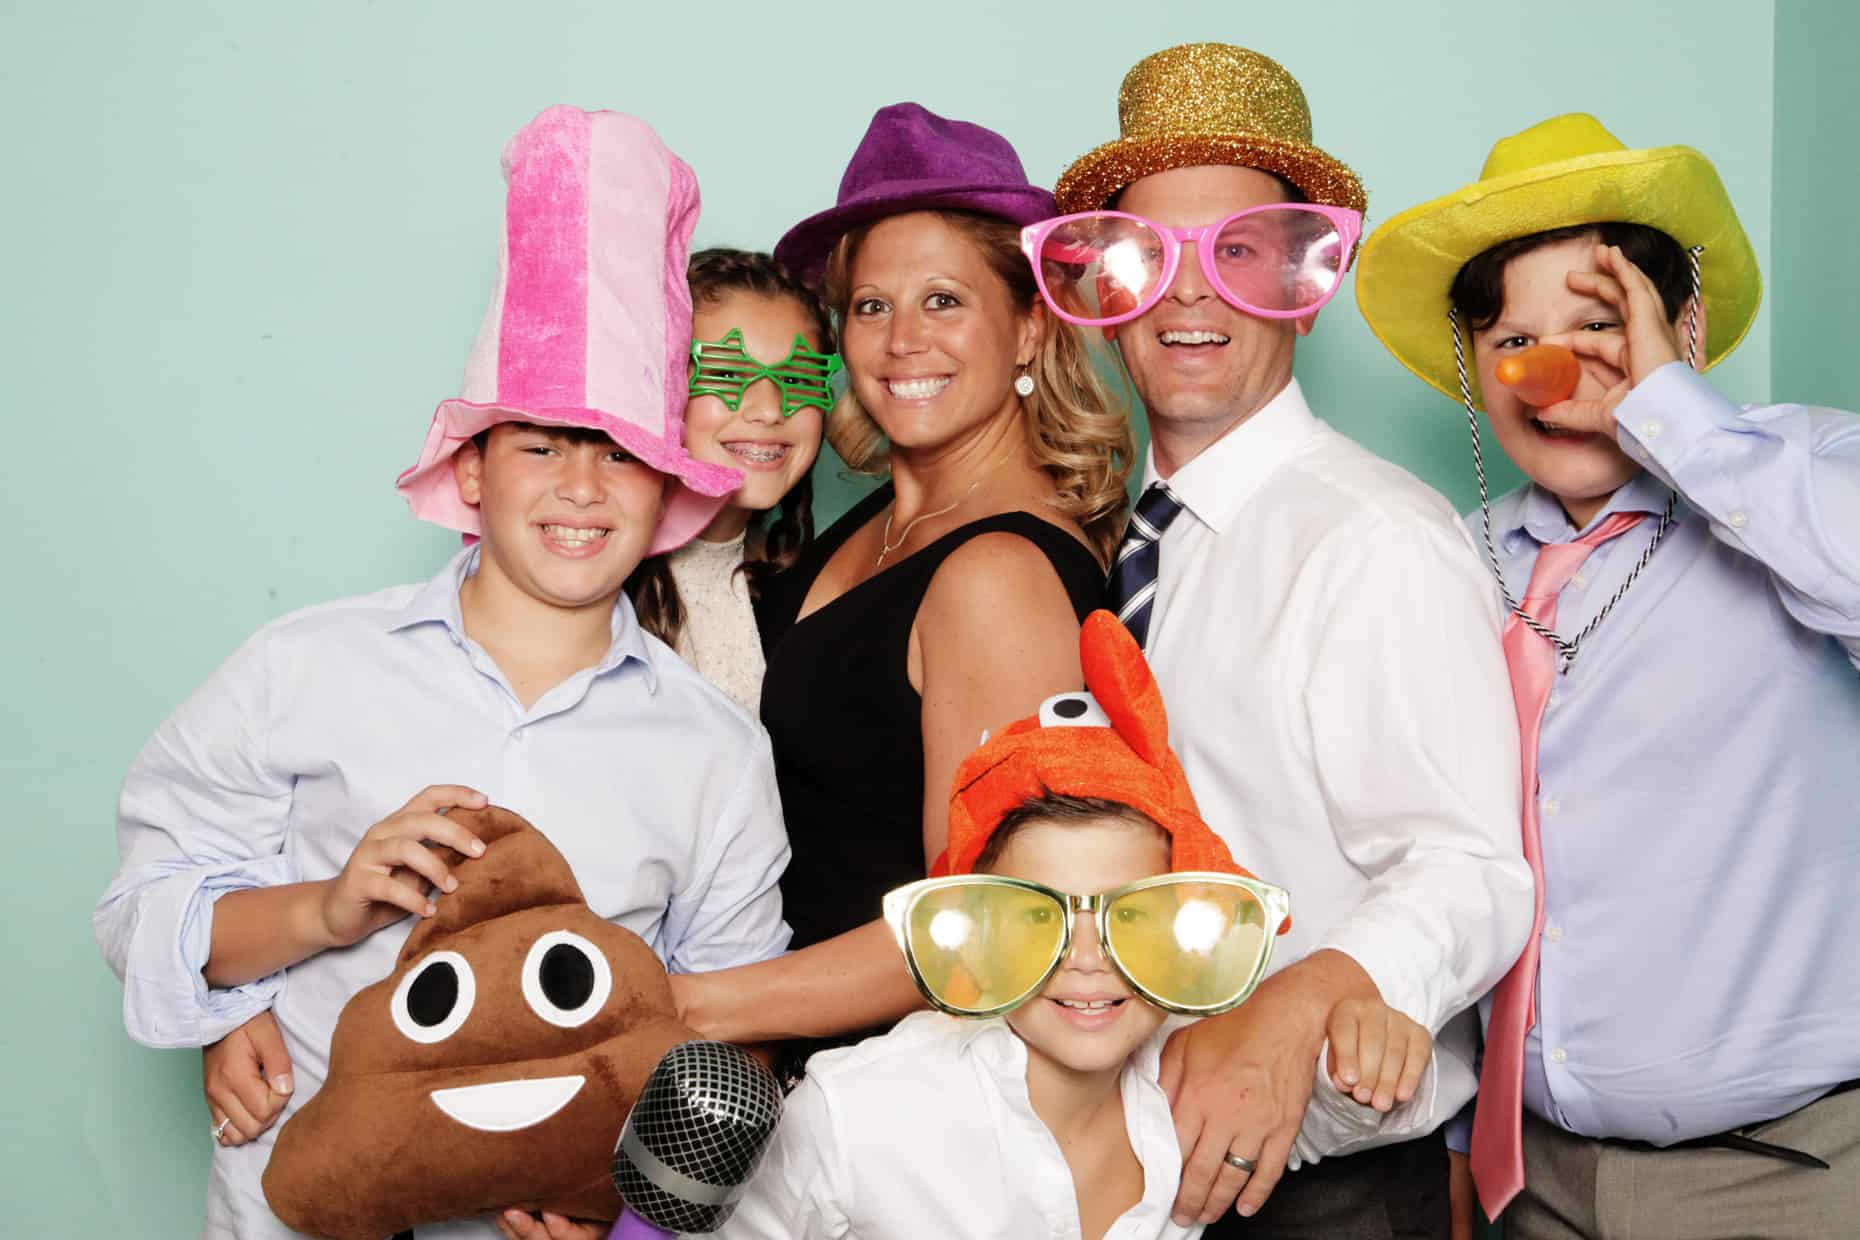 Jersey Shore Photo Booth